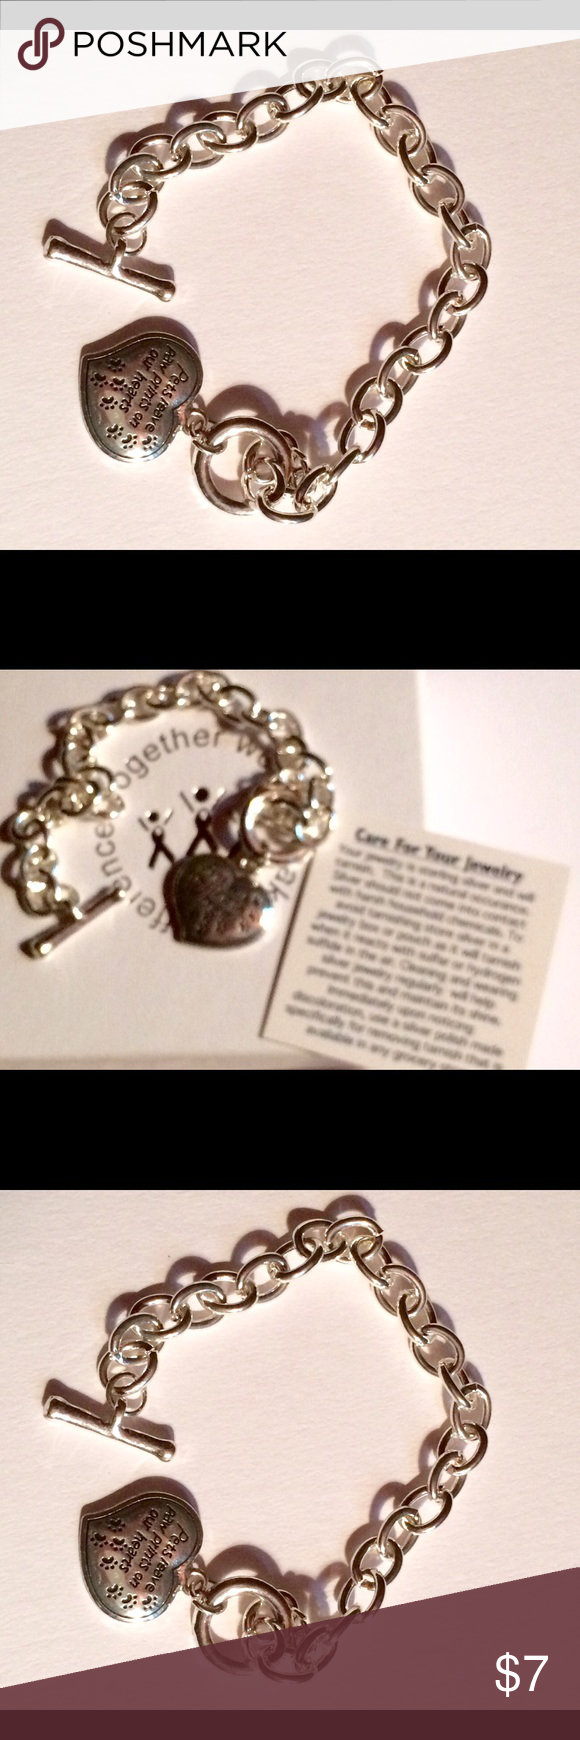 "Bracelet- ""Pets leave Paw Prints On Our ❤️ Hearts The quote says it all  Bracelet is 7 1/2"" and has a toggle clasp. Brand new in box 📦 Jewelry Bracelets"